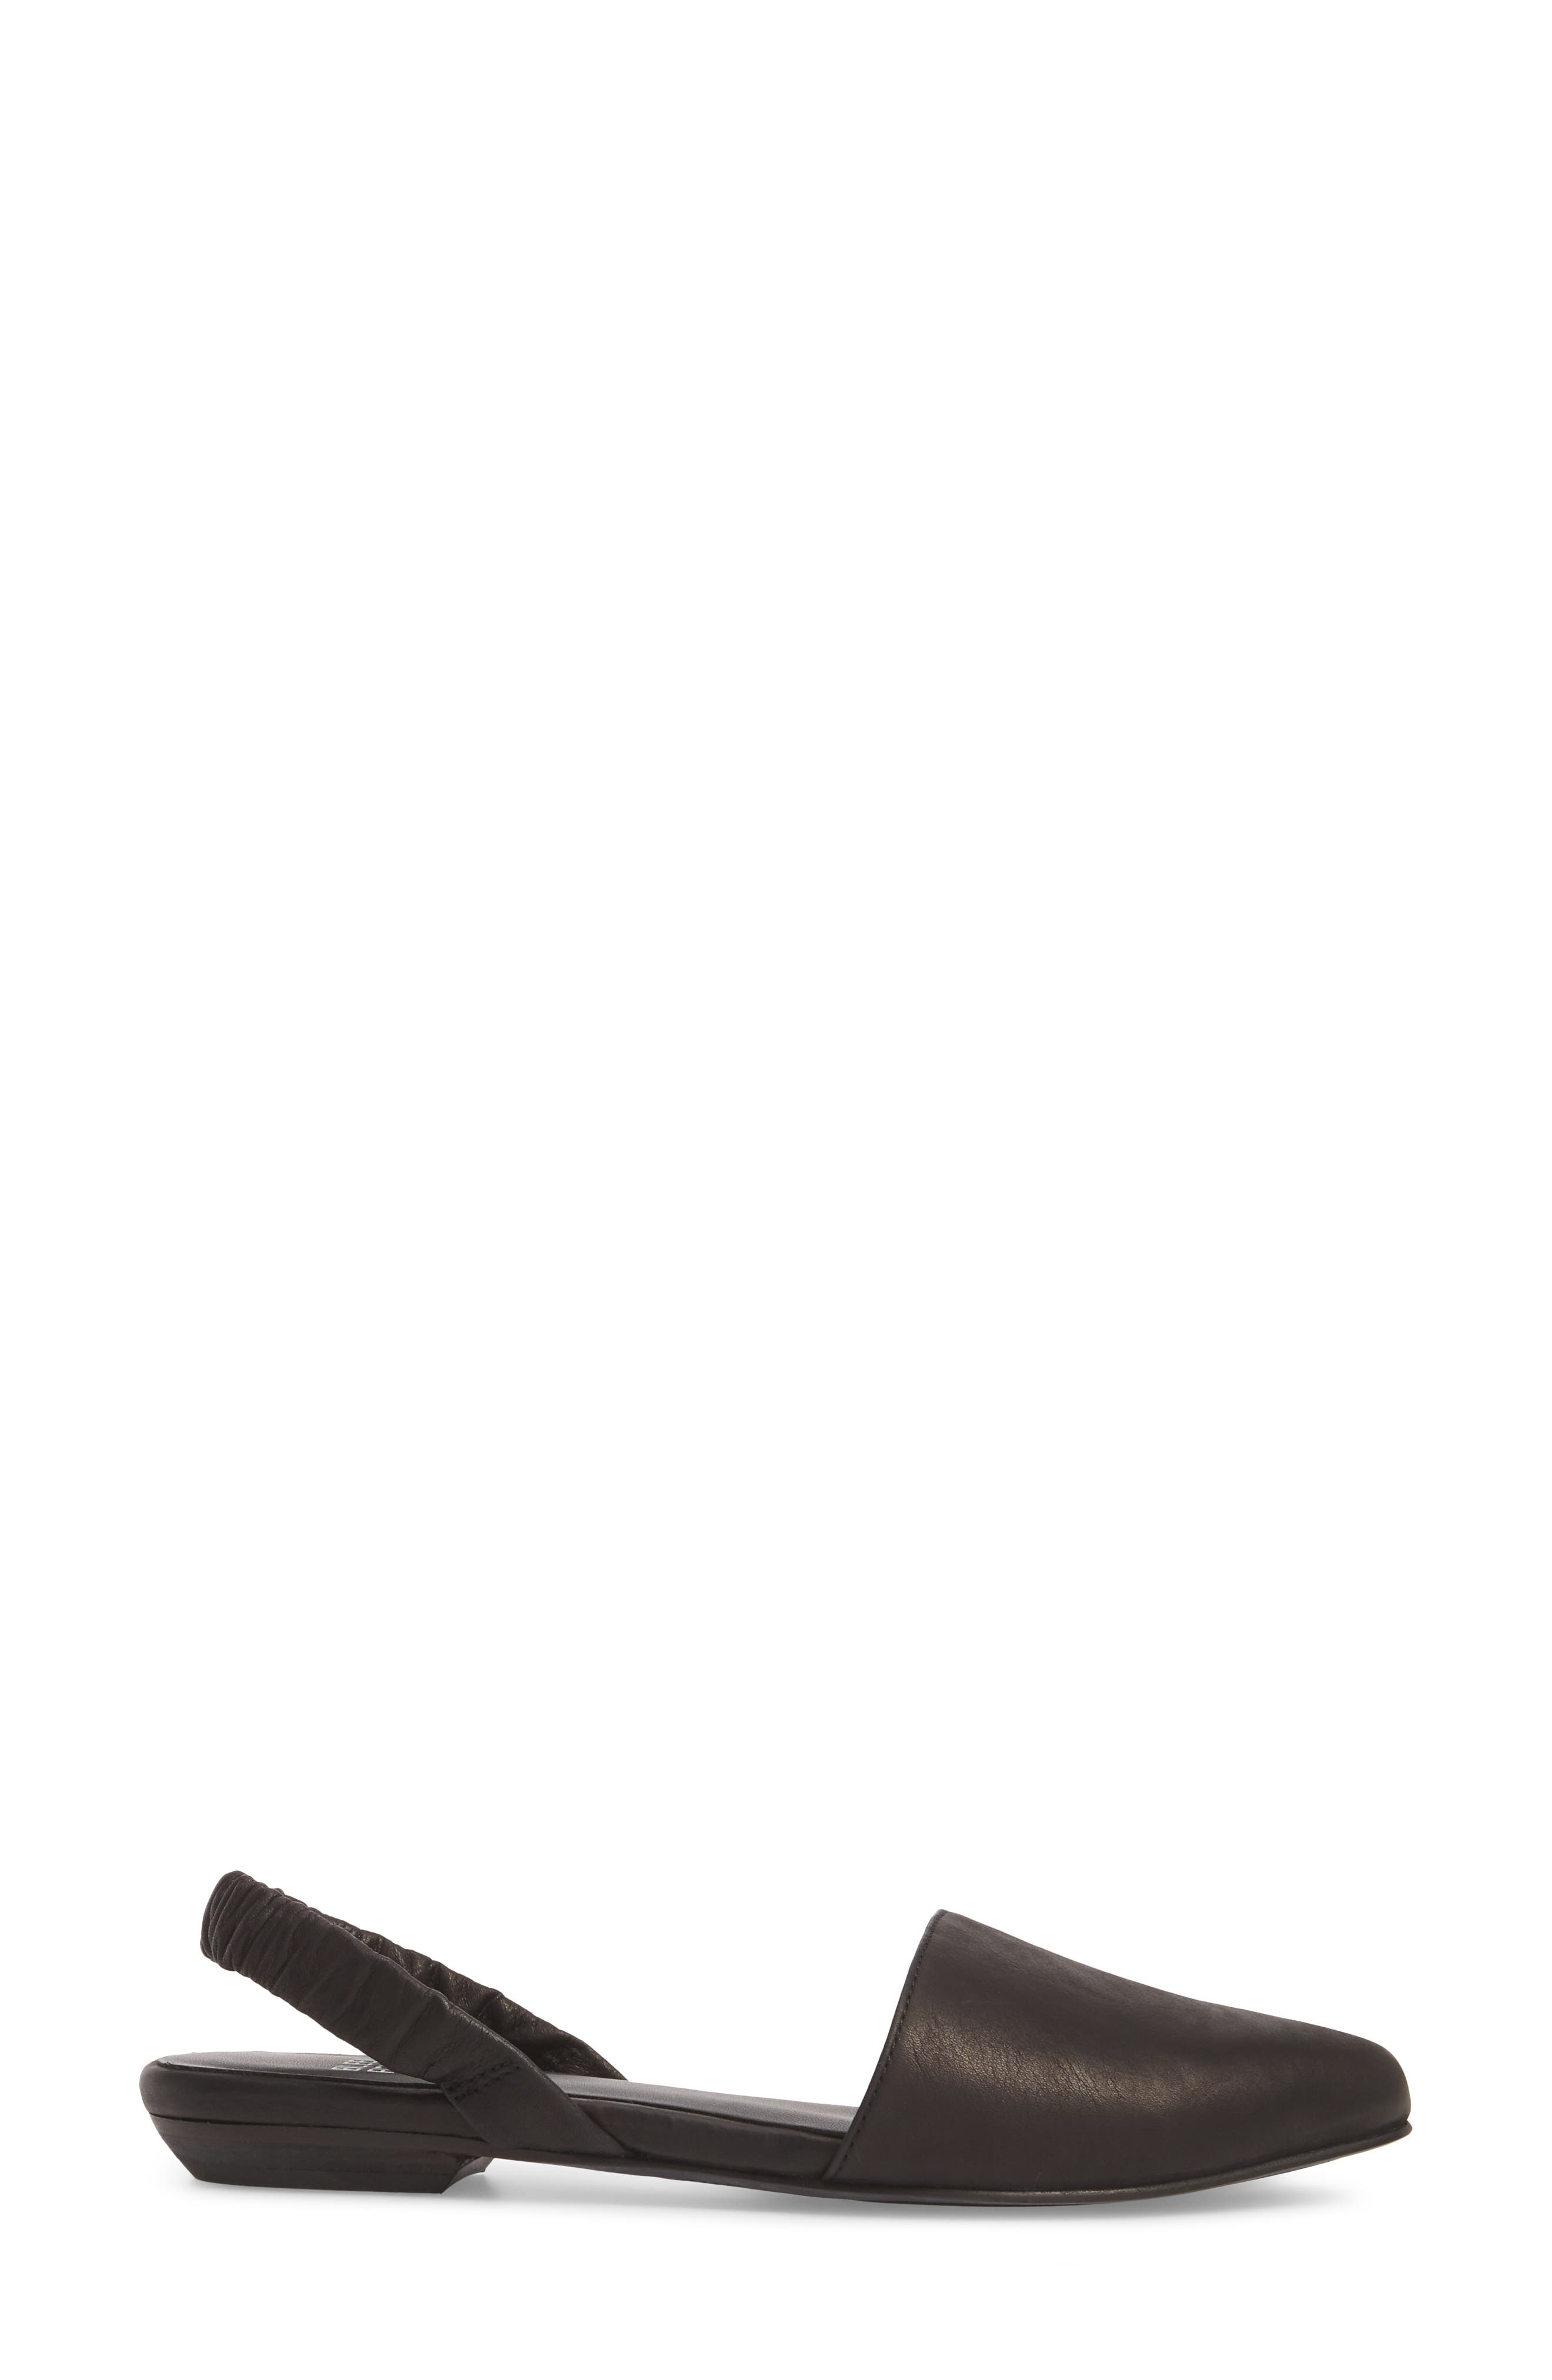 Alternate Image 3  - Eileen Fisher Tula Slingback Flat (Women)